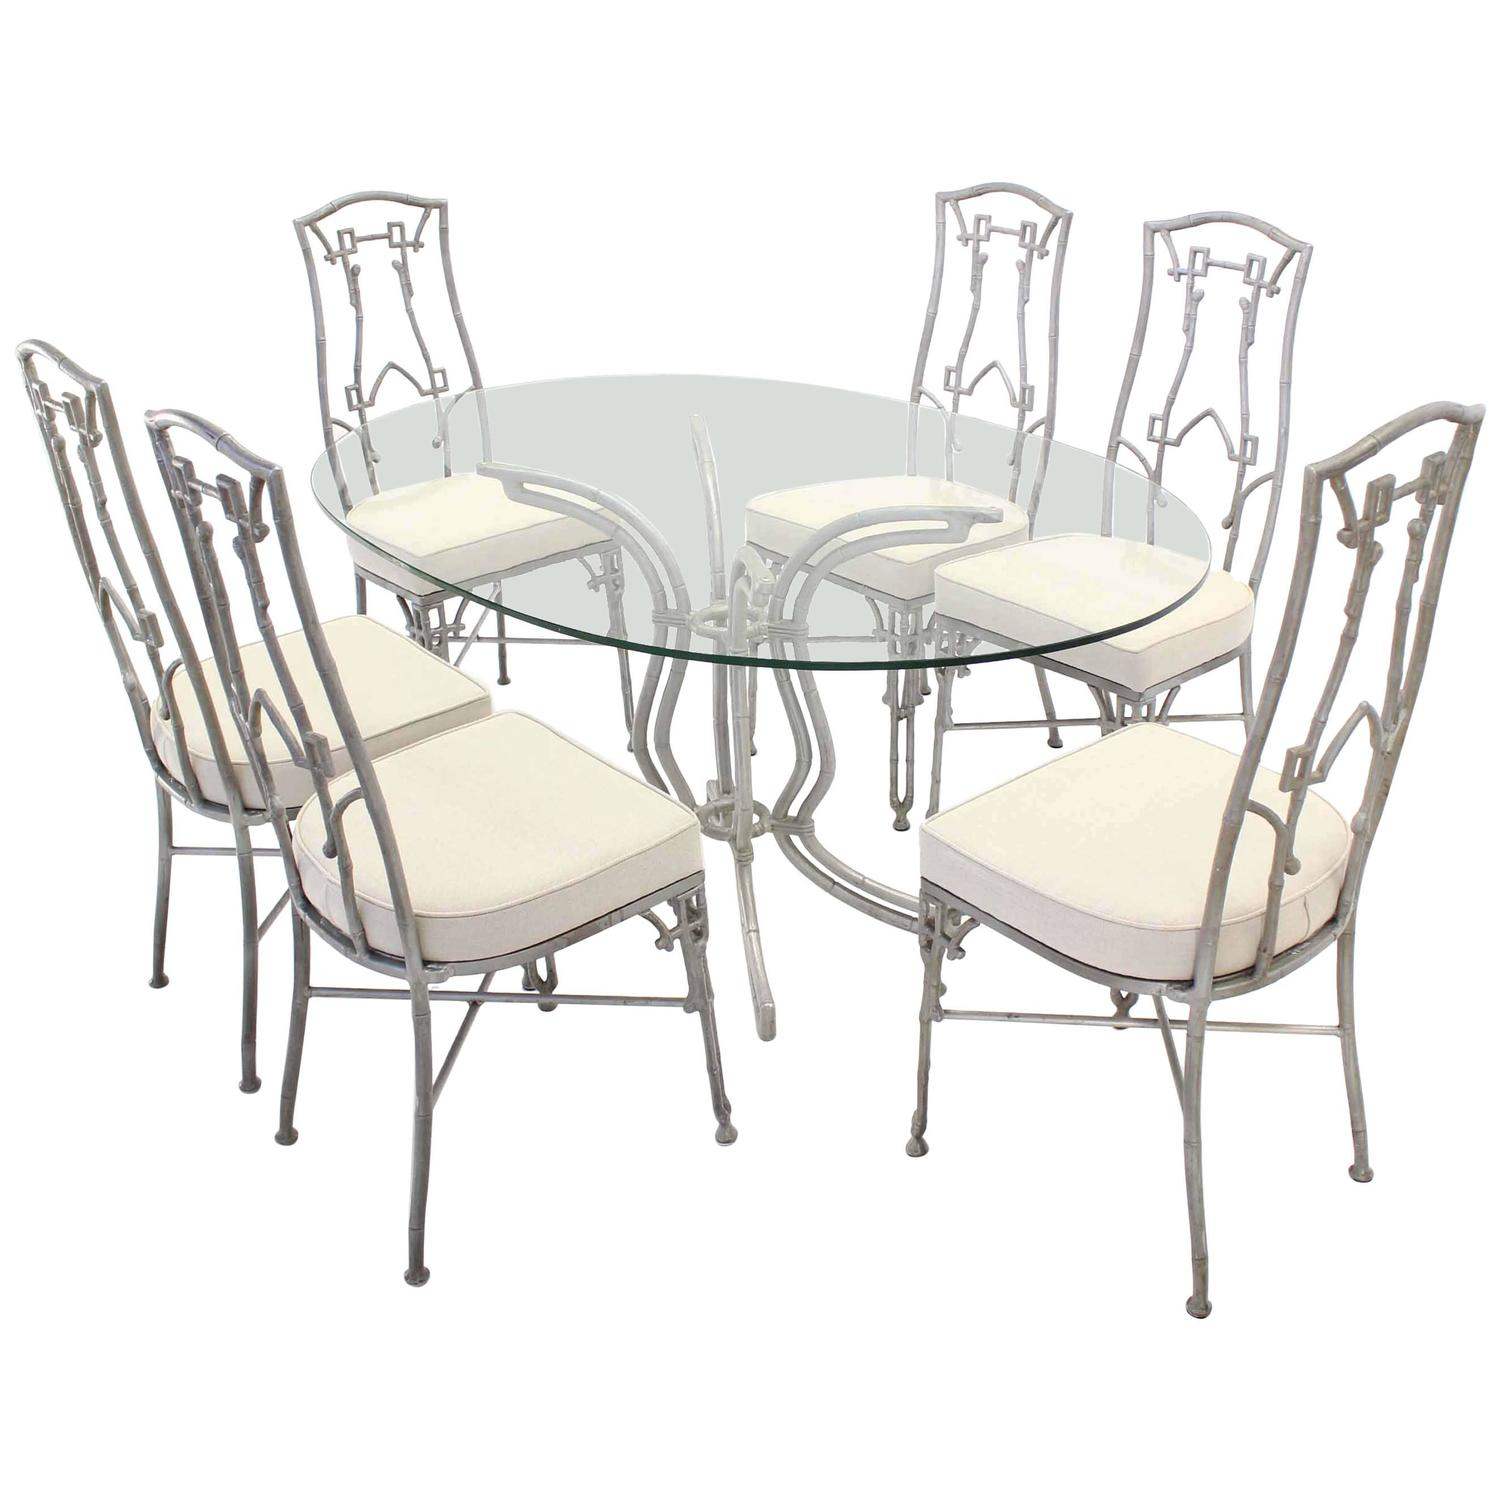 Cast aluminum faux bamboo mid century modern six chairs and table dining set for sale at 1stdibs - Bamboo dining room furniture ...